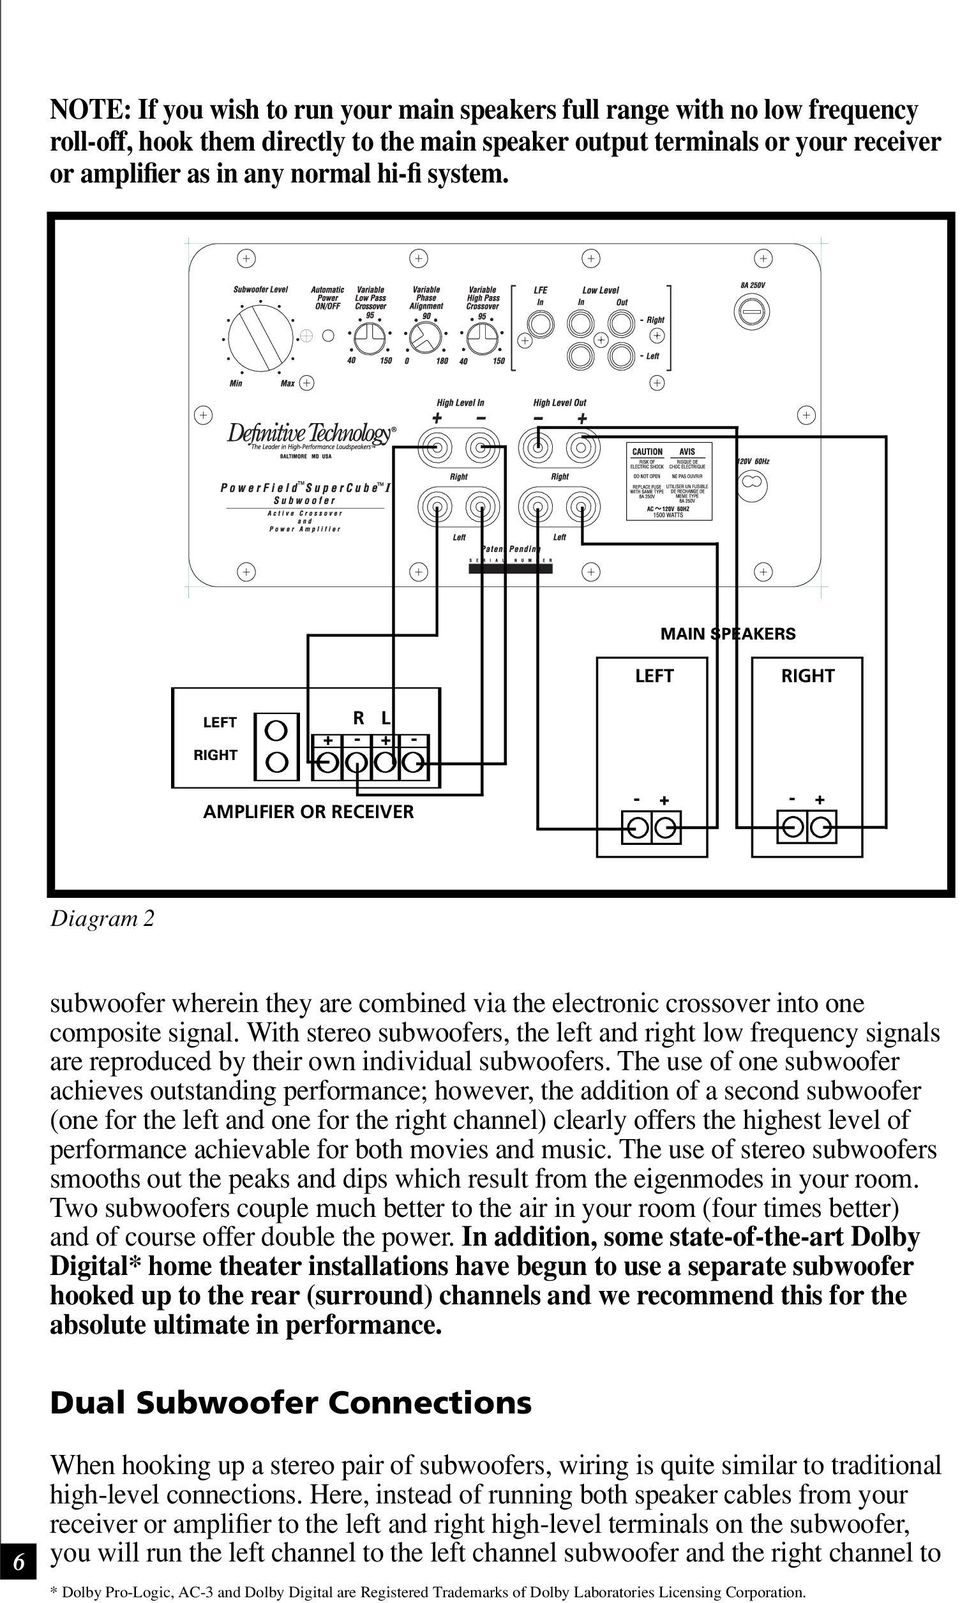 Supercube Subwoofers I Ii Iii Reference And Trinity Addition Powered Subwoofer Wiring Diagram On 8 Pin Crossover With Stereo The Left Right Low Frequency Signals Are Reproduced By Their Own